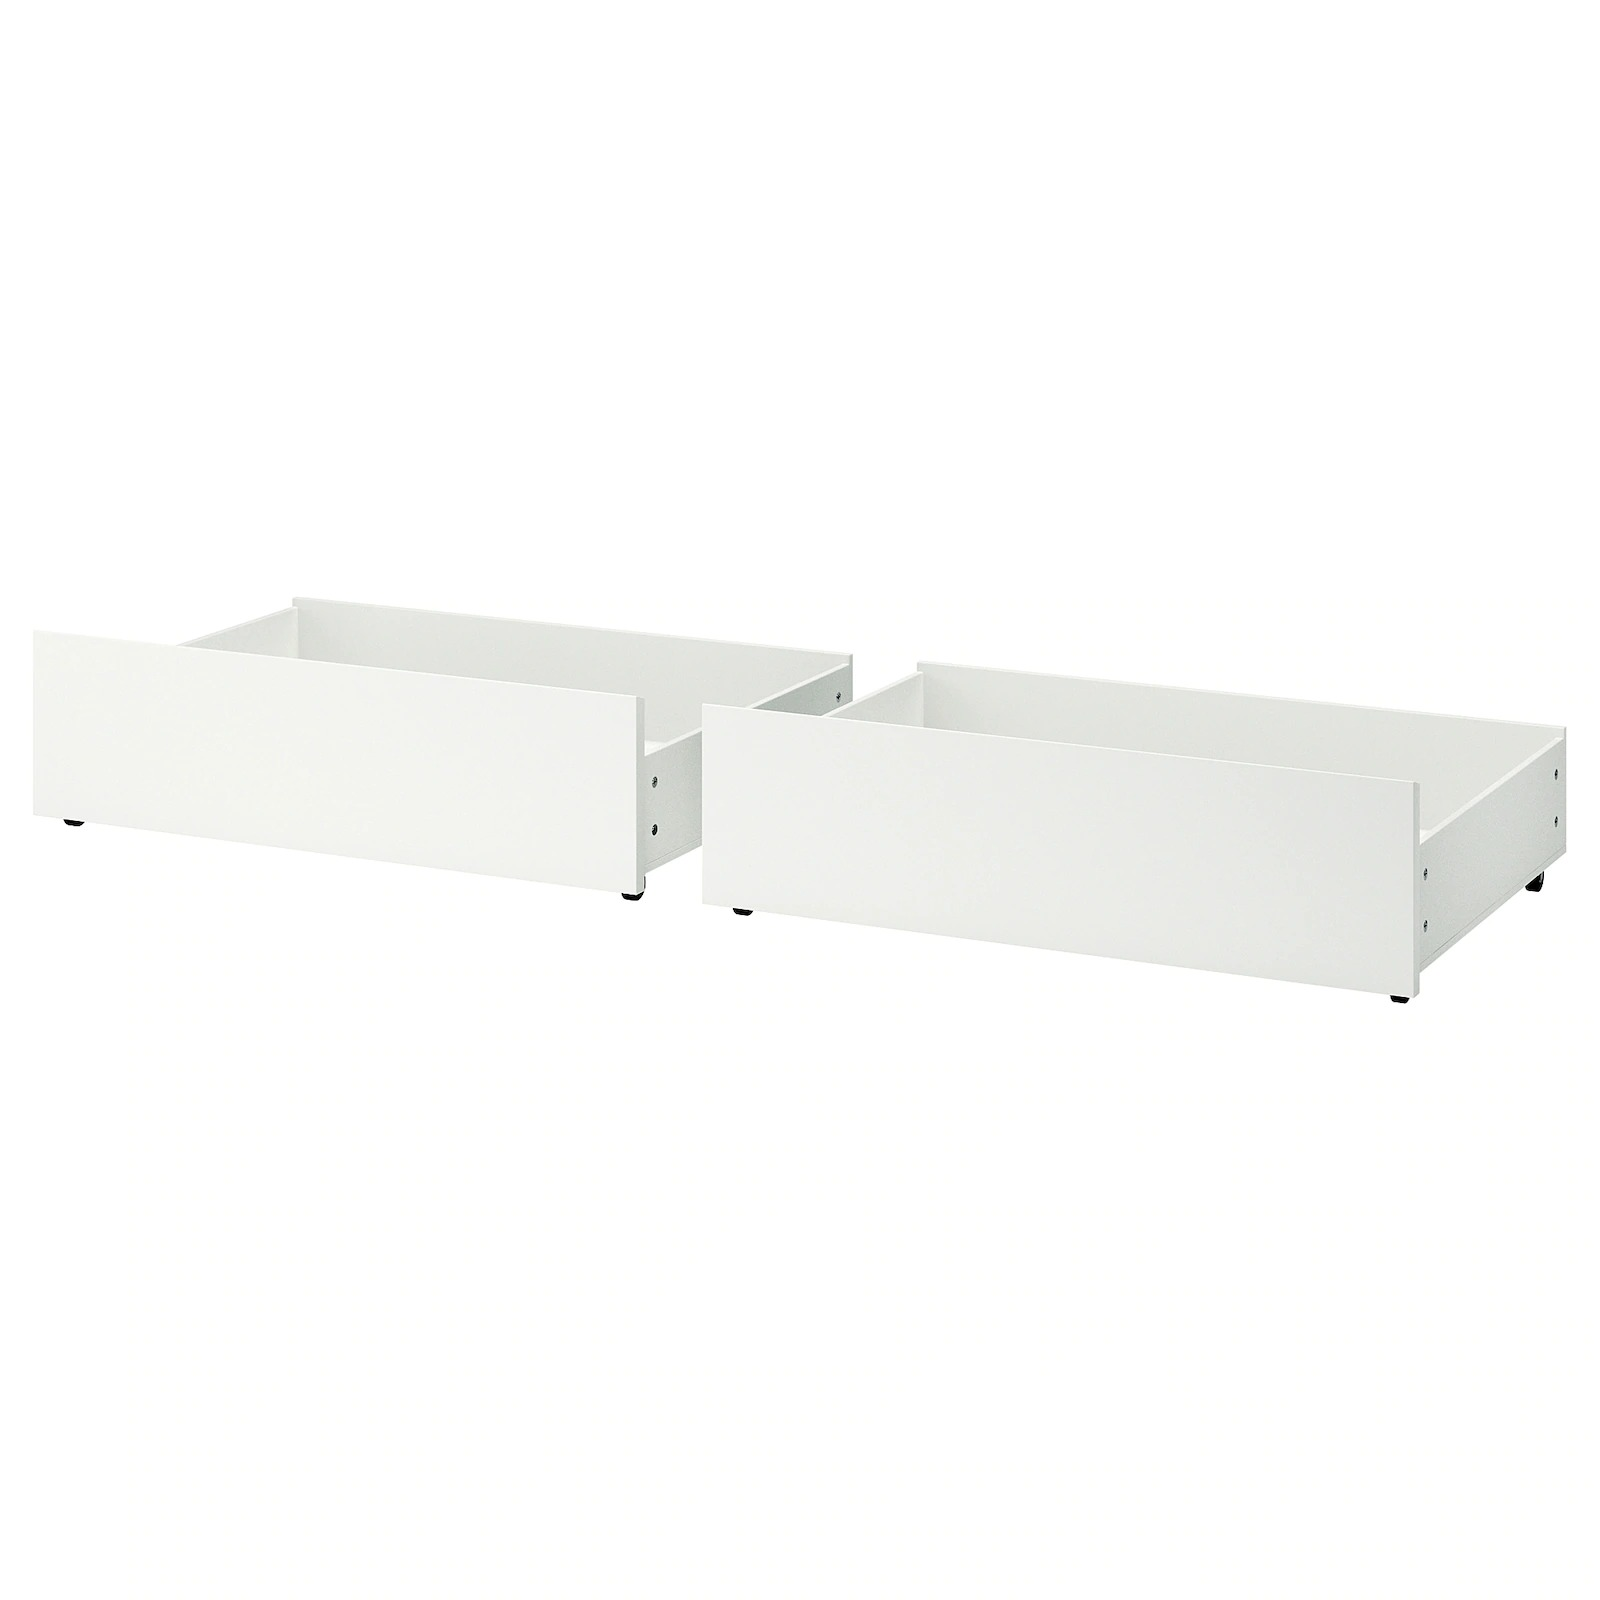 Ikea Malm - best under bed storage boxes